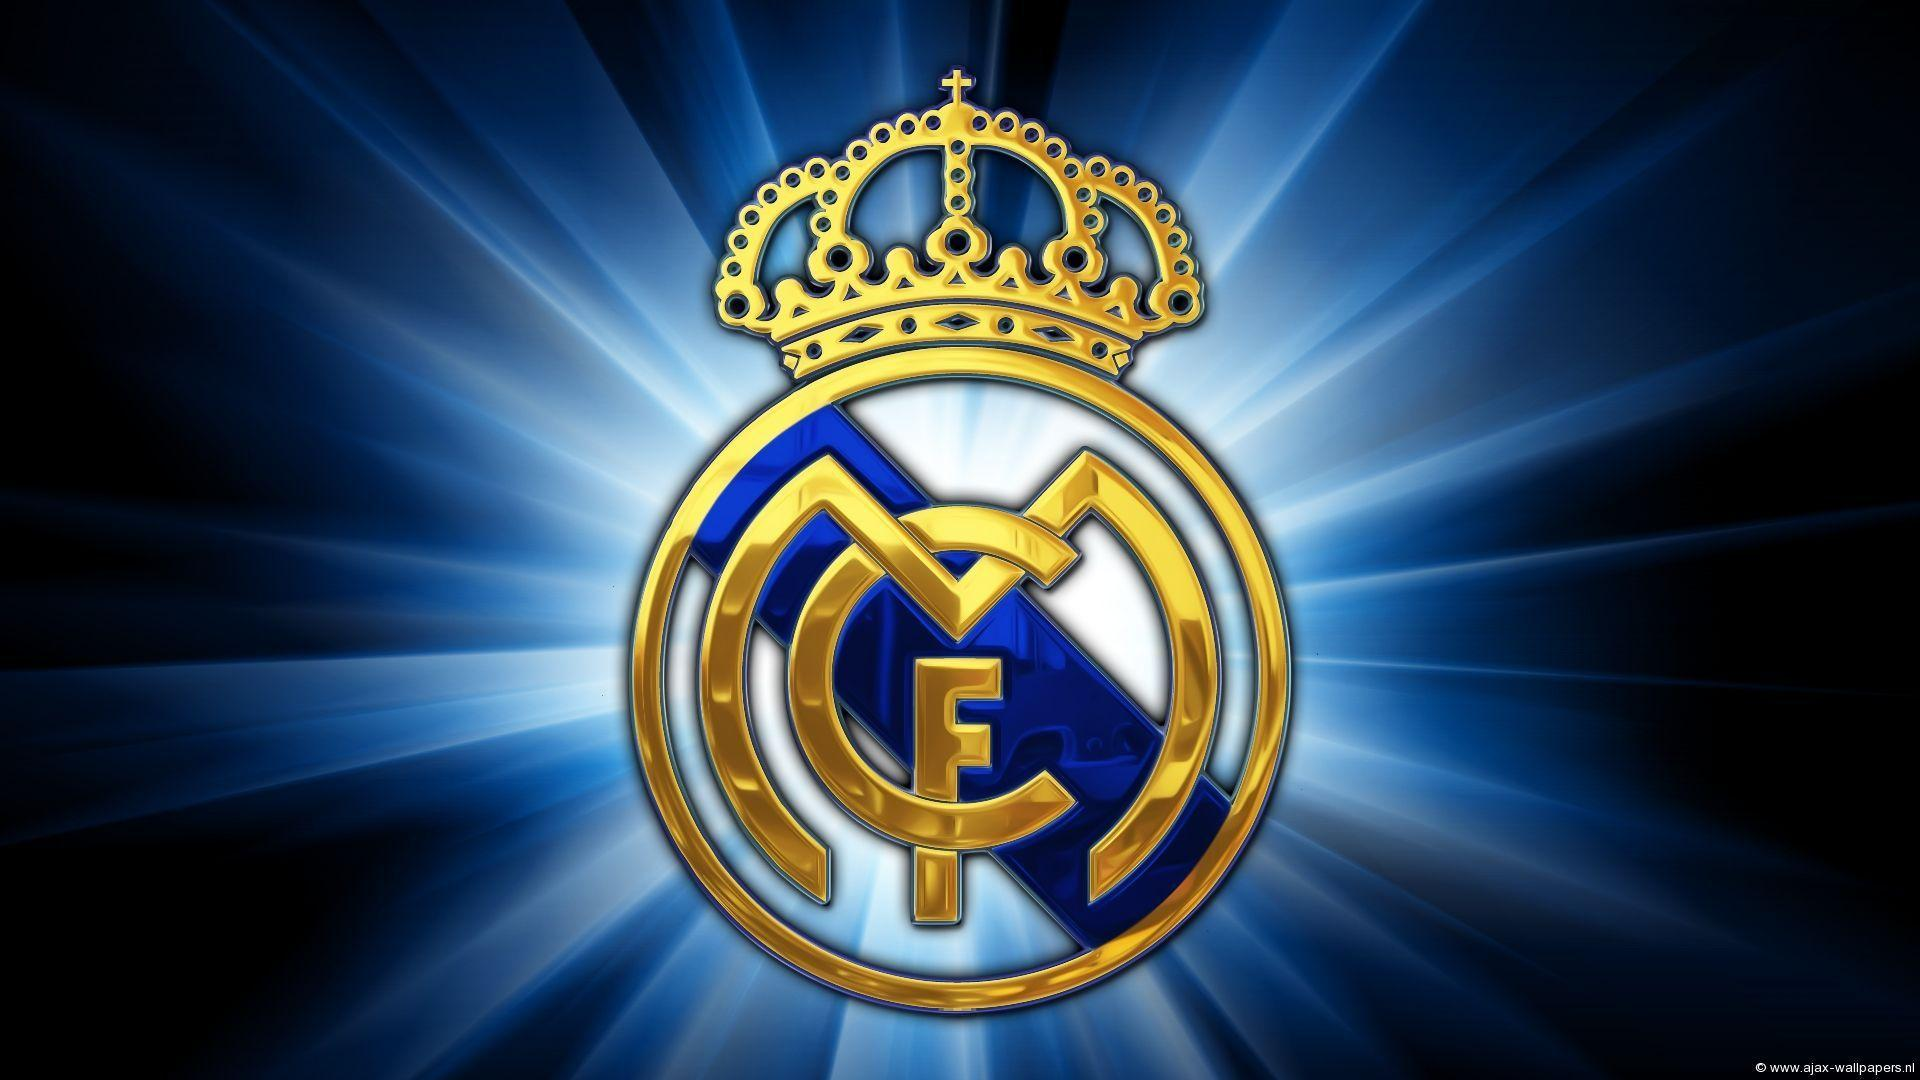 Real madrid logo wallpapers hd 2017 wallpaper cave 1000 images about real madrid cf on pinterest real madrid thecheapjerseys Image collections